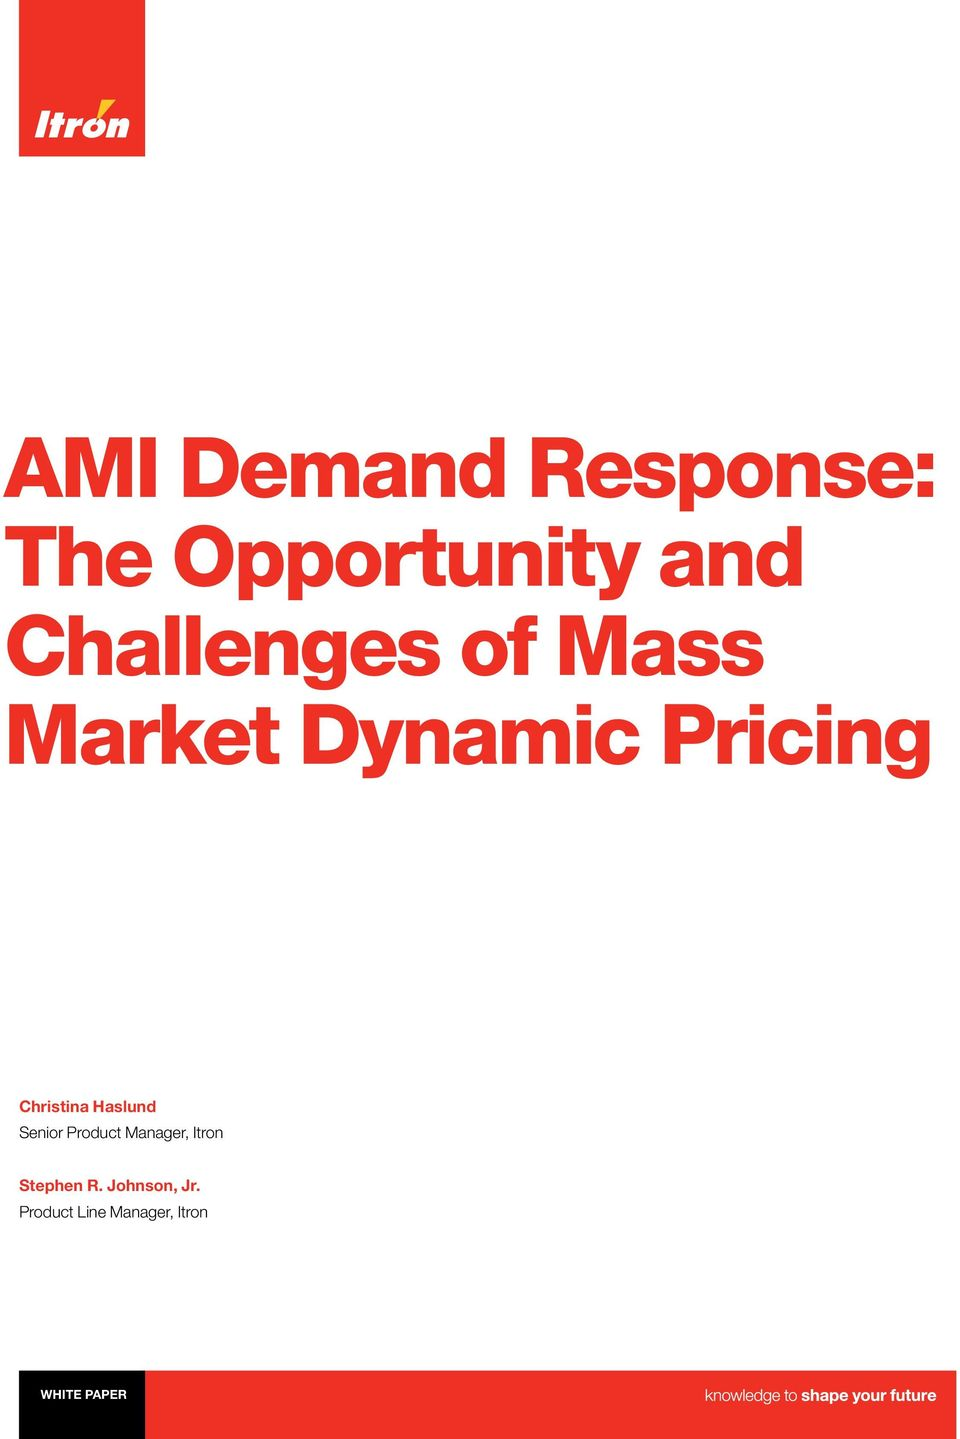 AMI Demand Response: The Opportunity and Challenges of Mass Market